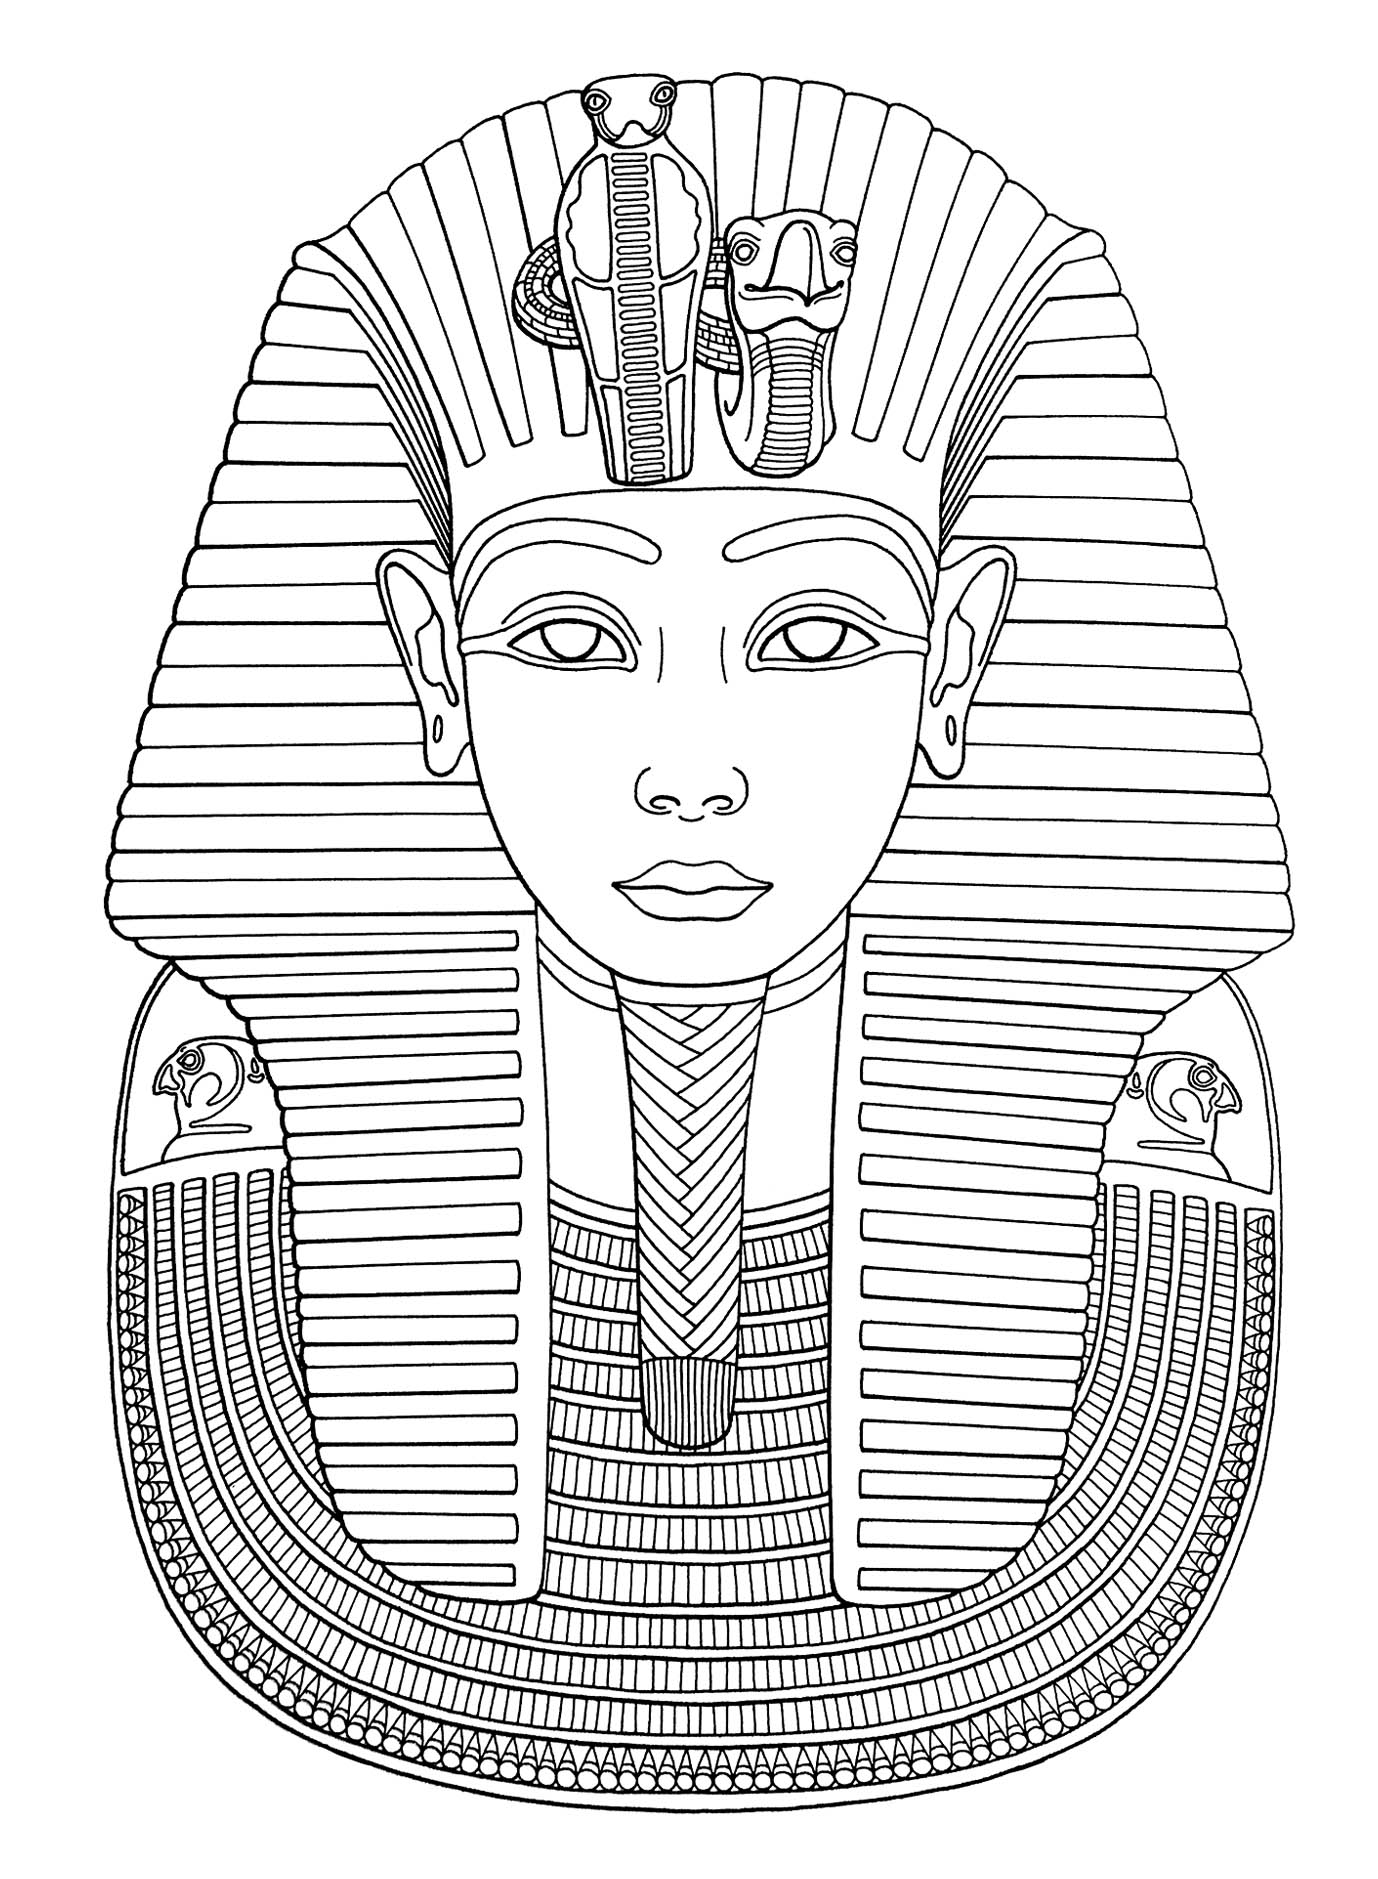 Funny Egypt coloring page for kids